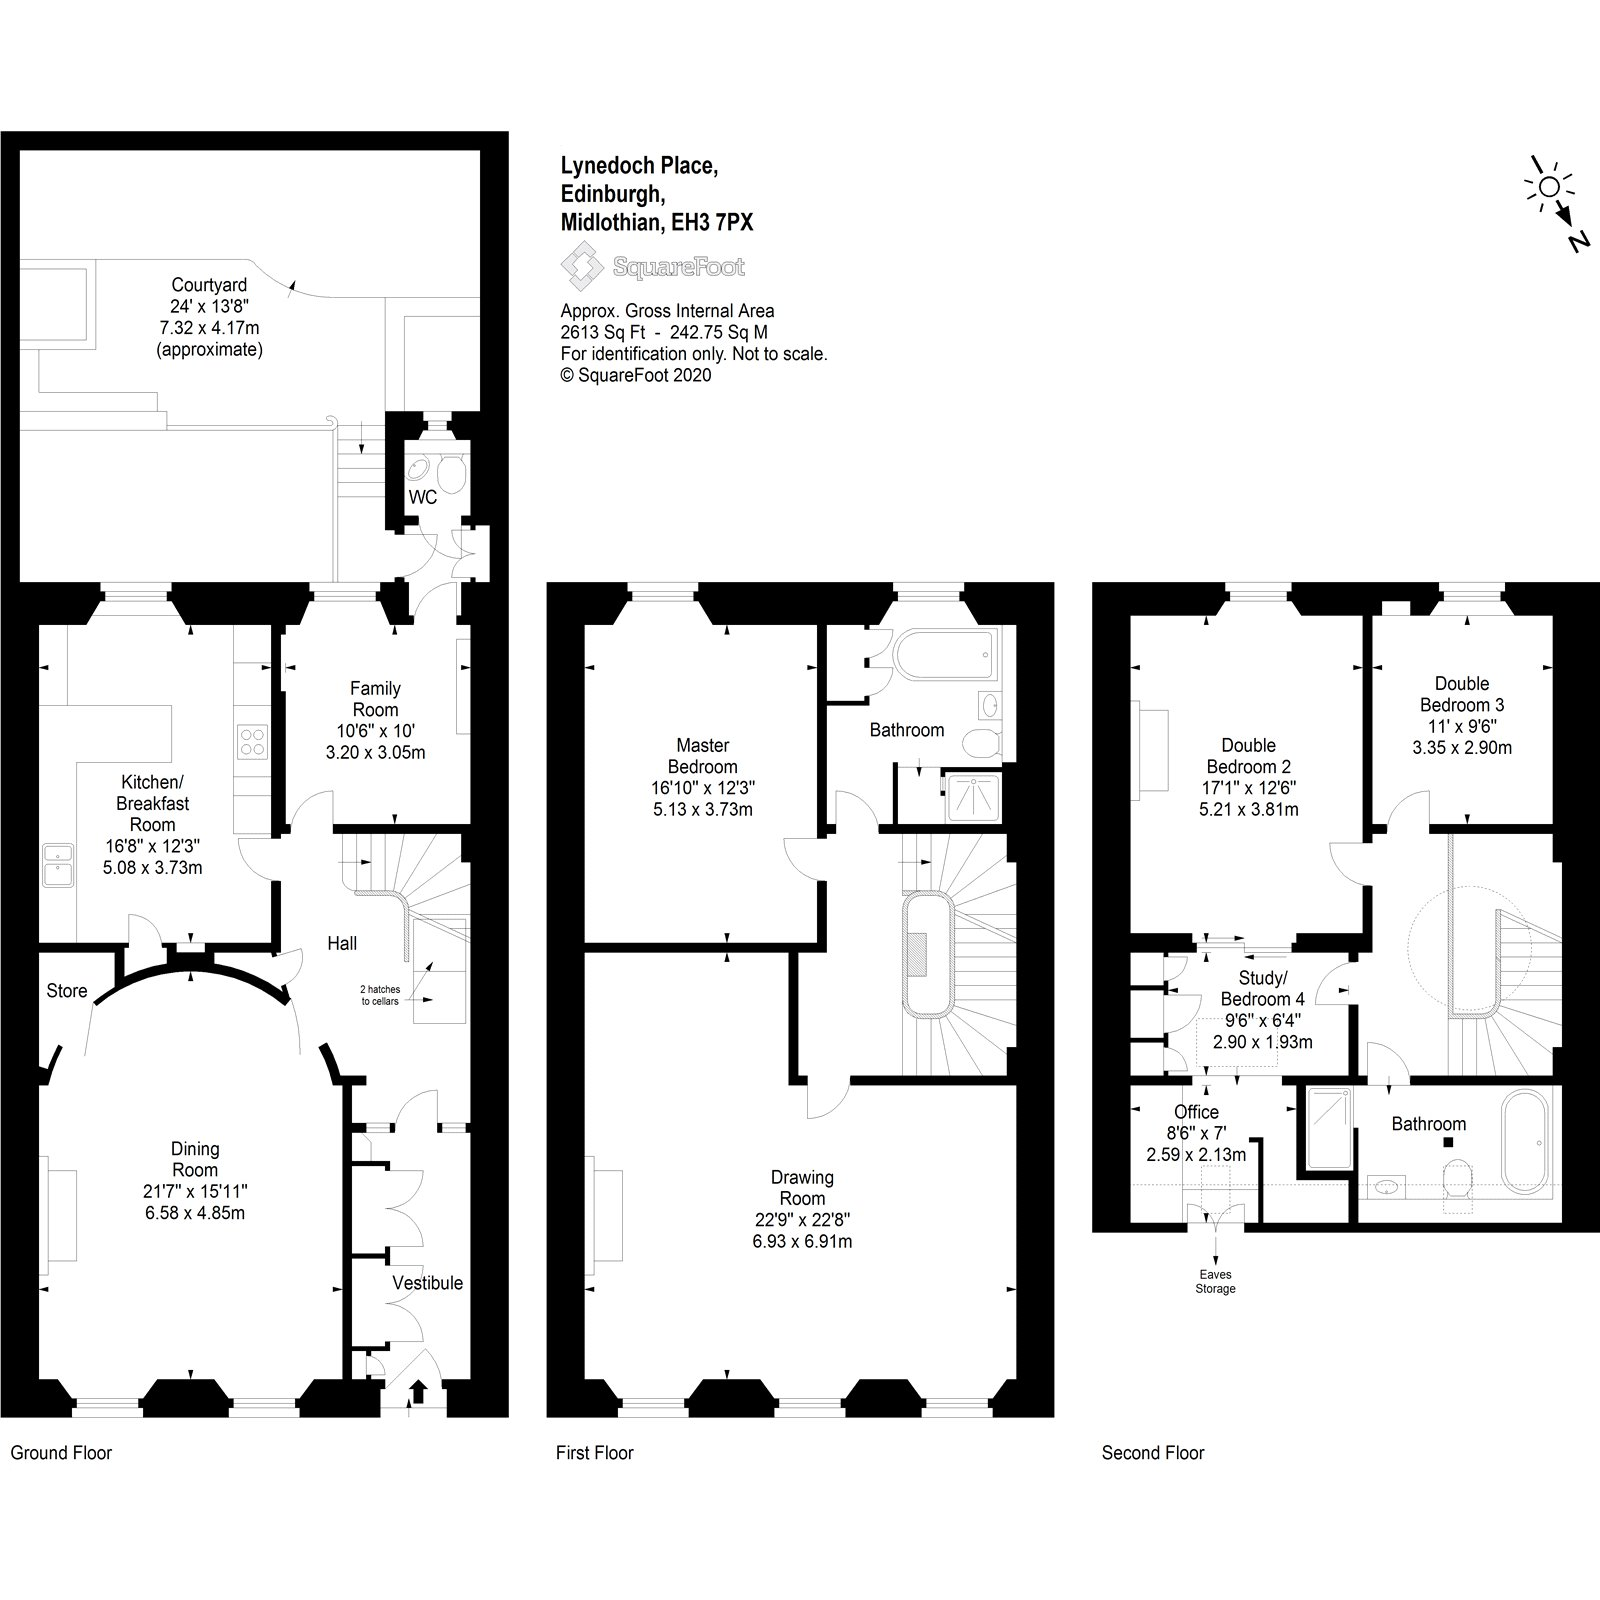 4 bedroom house for sale in Lynedoch Place, Edinburgh